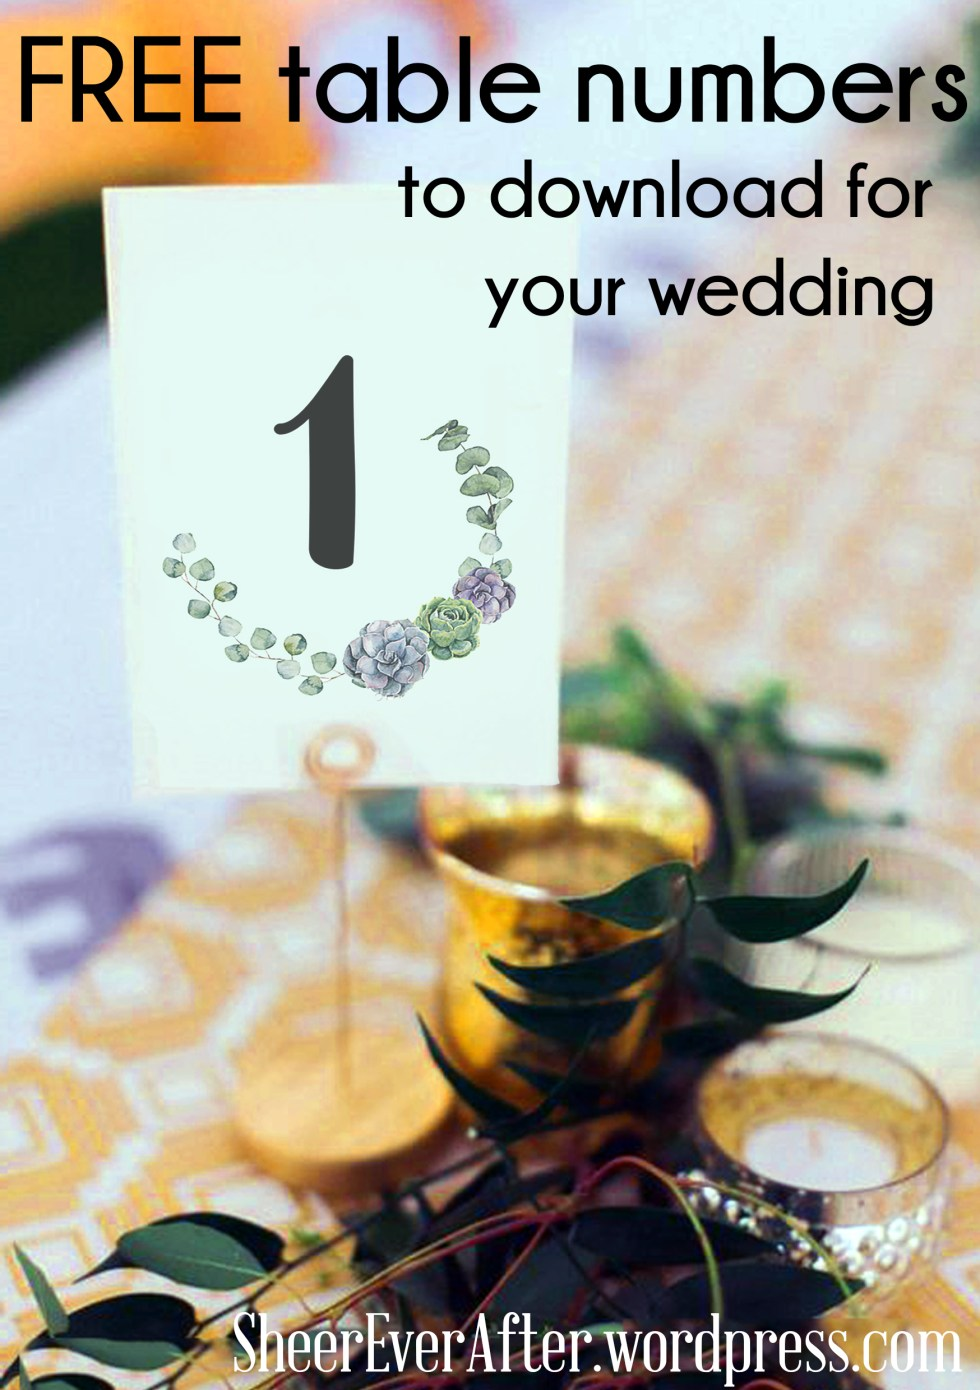 Free table numbers from Sheer Ever After